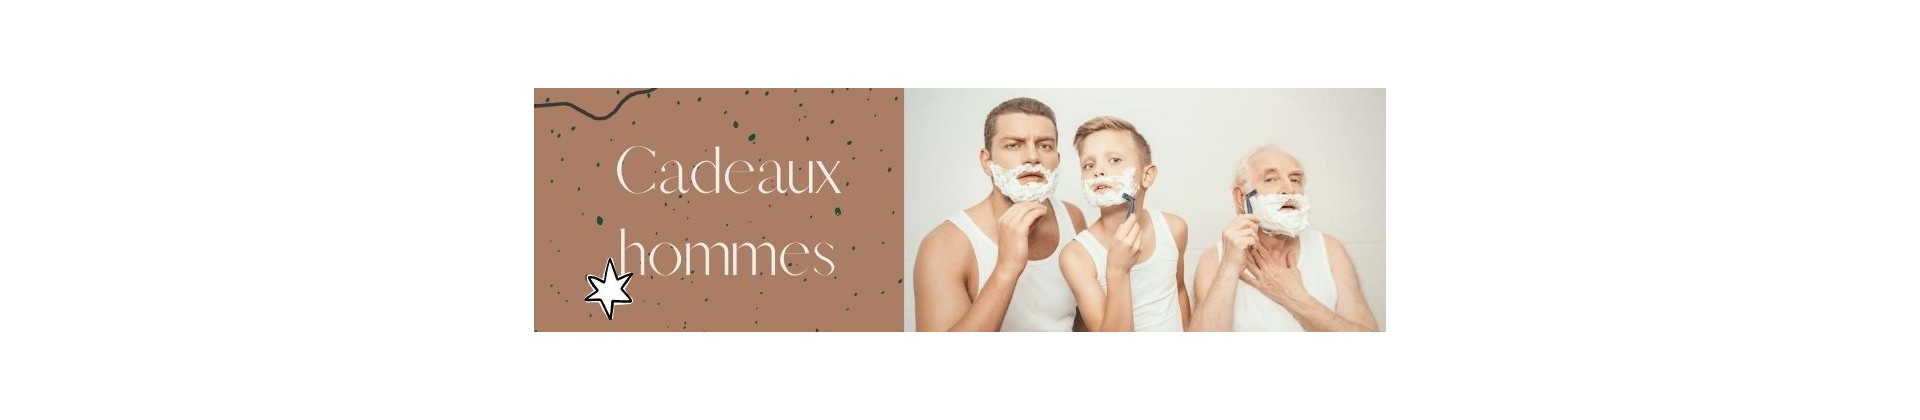 Gifts for men : best gift ideas for him from France